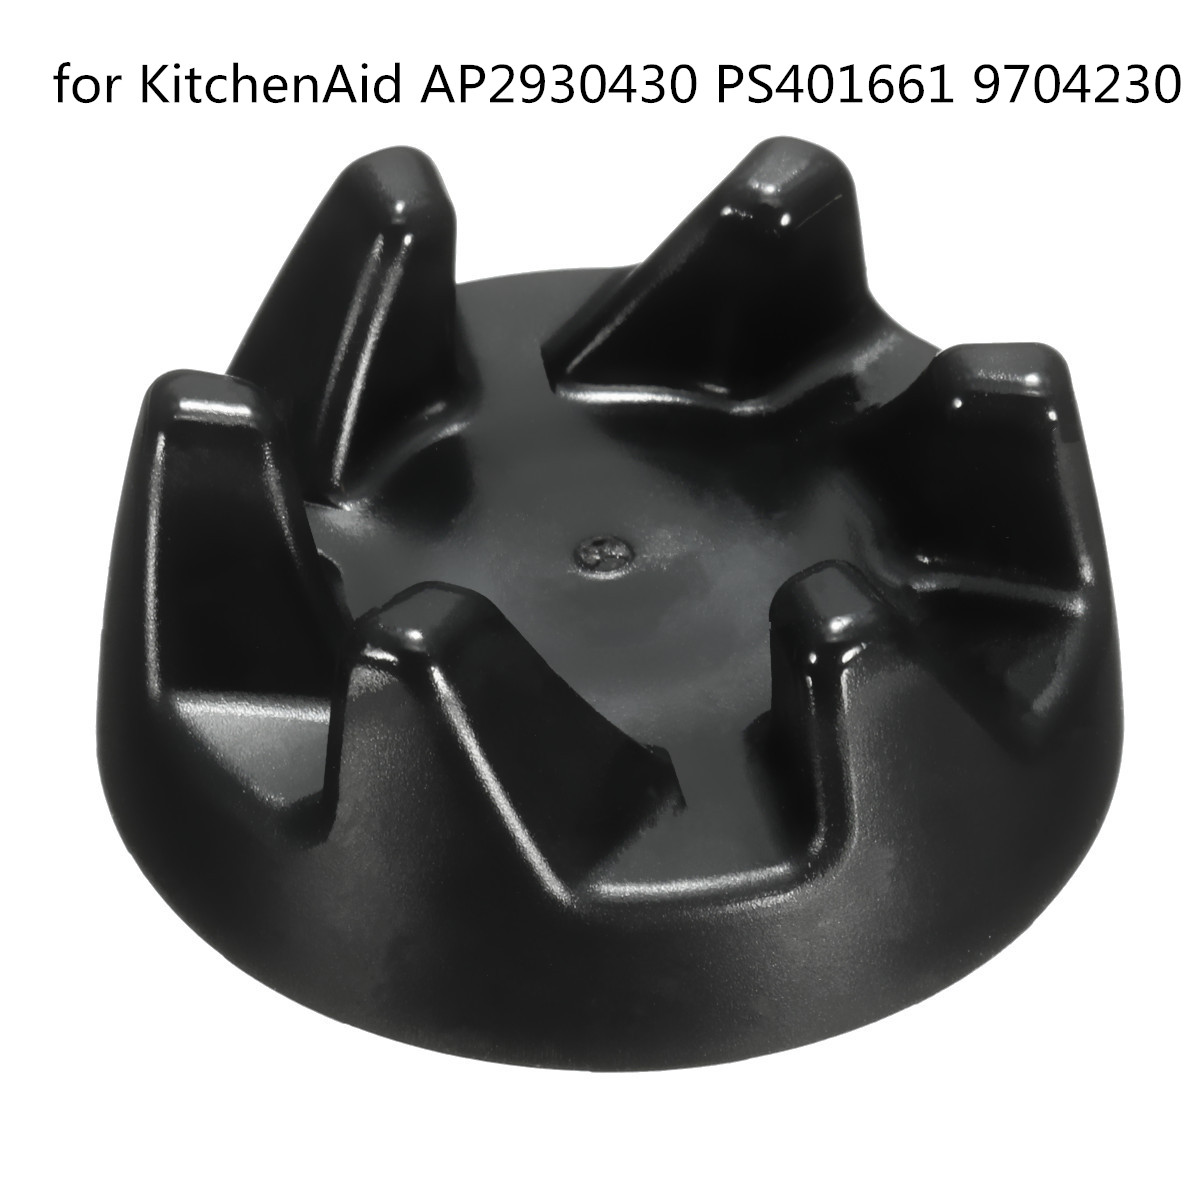 Replacement Rubber Blender Clutch Coupler Gear 6 Teeth 36mm Dia 9704230 For KitchenAid